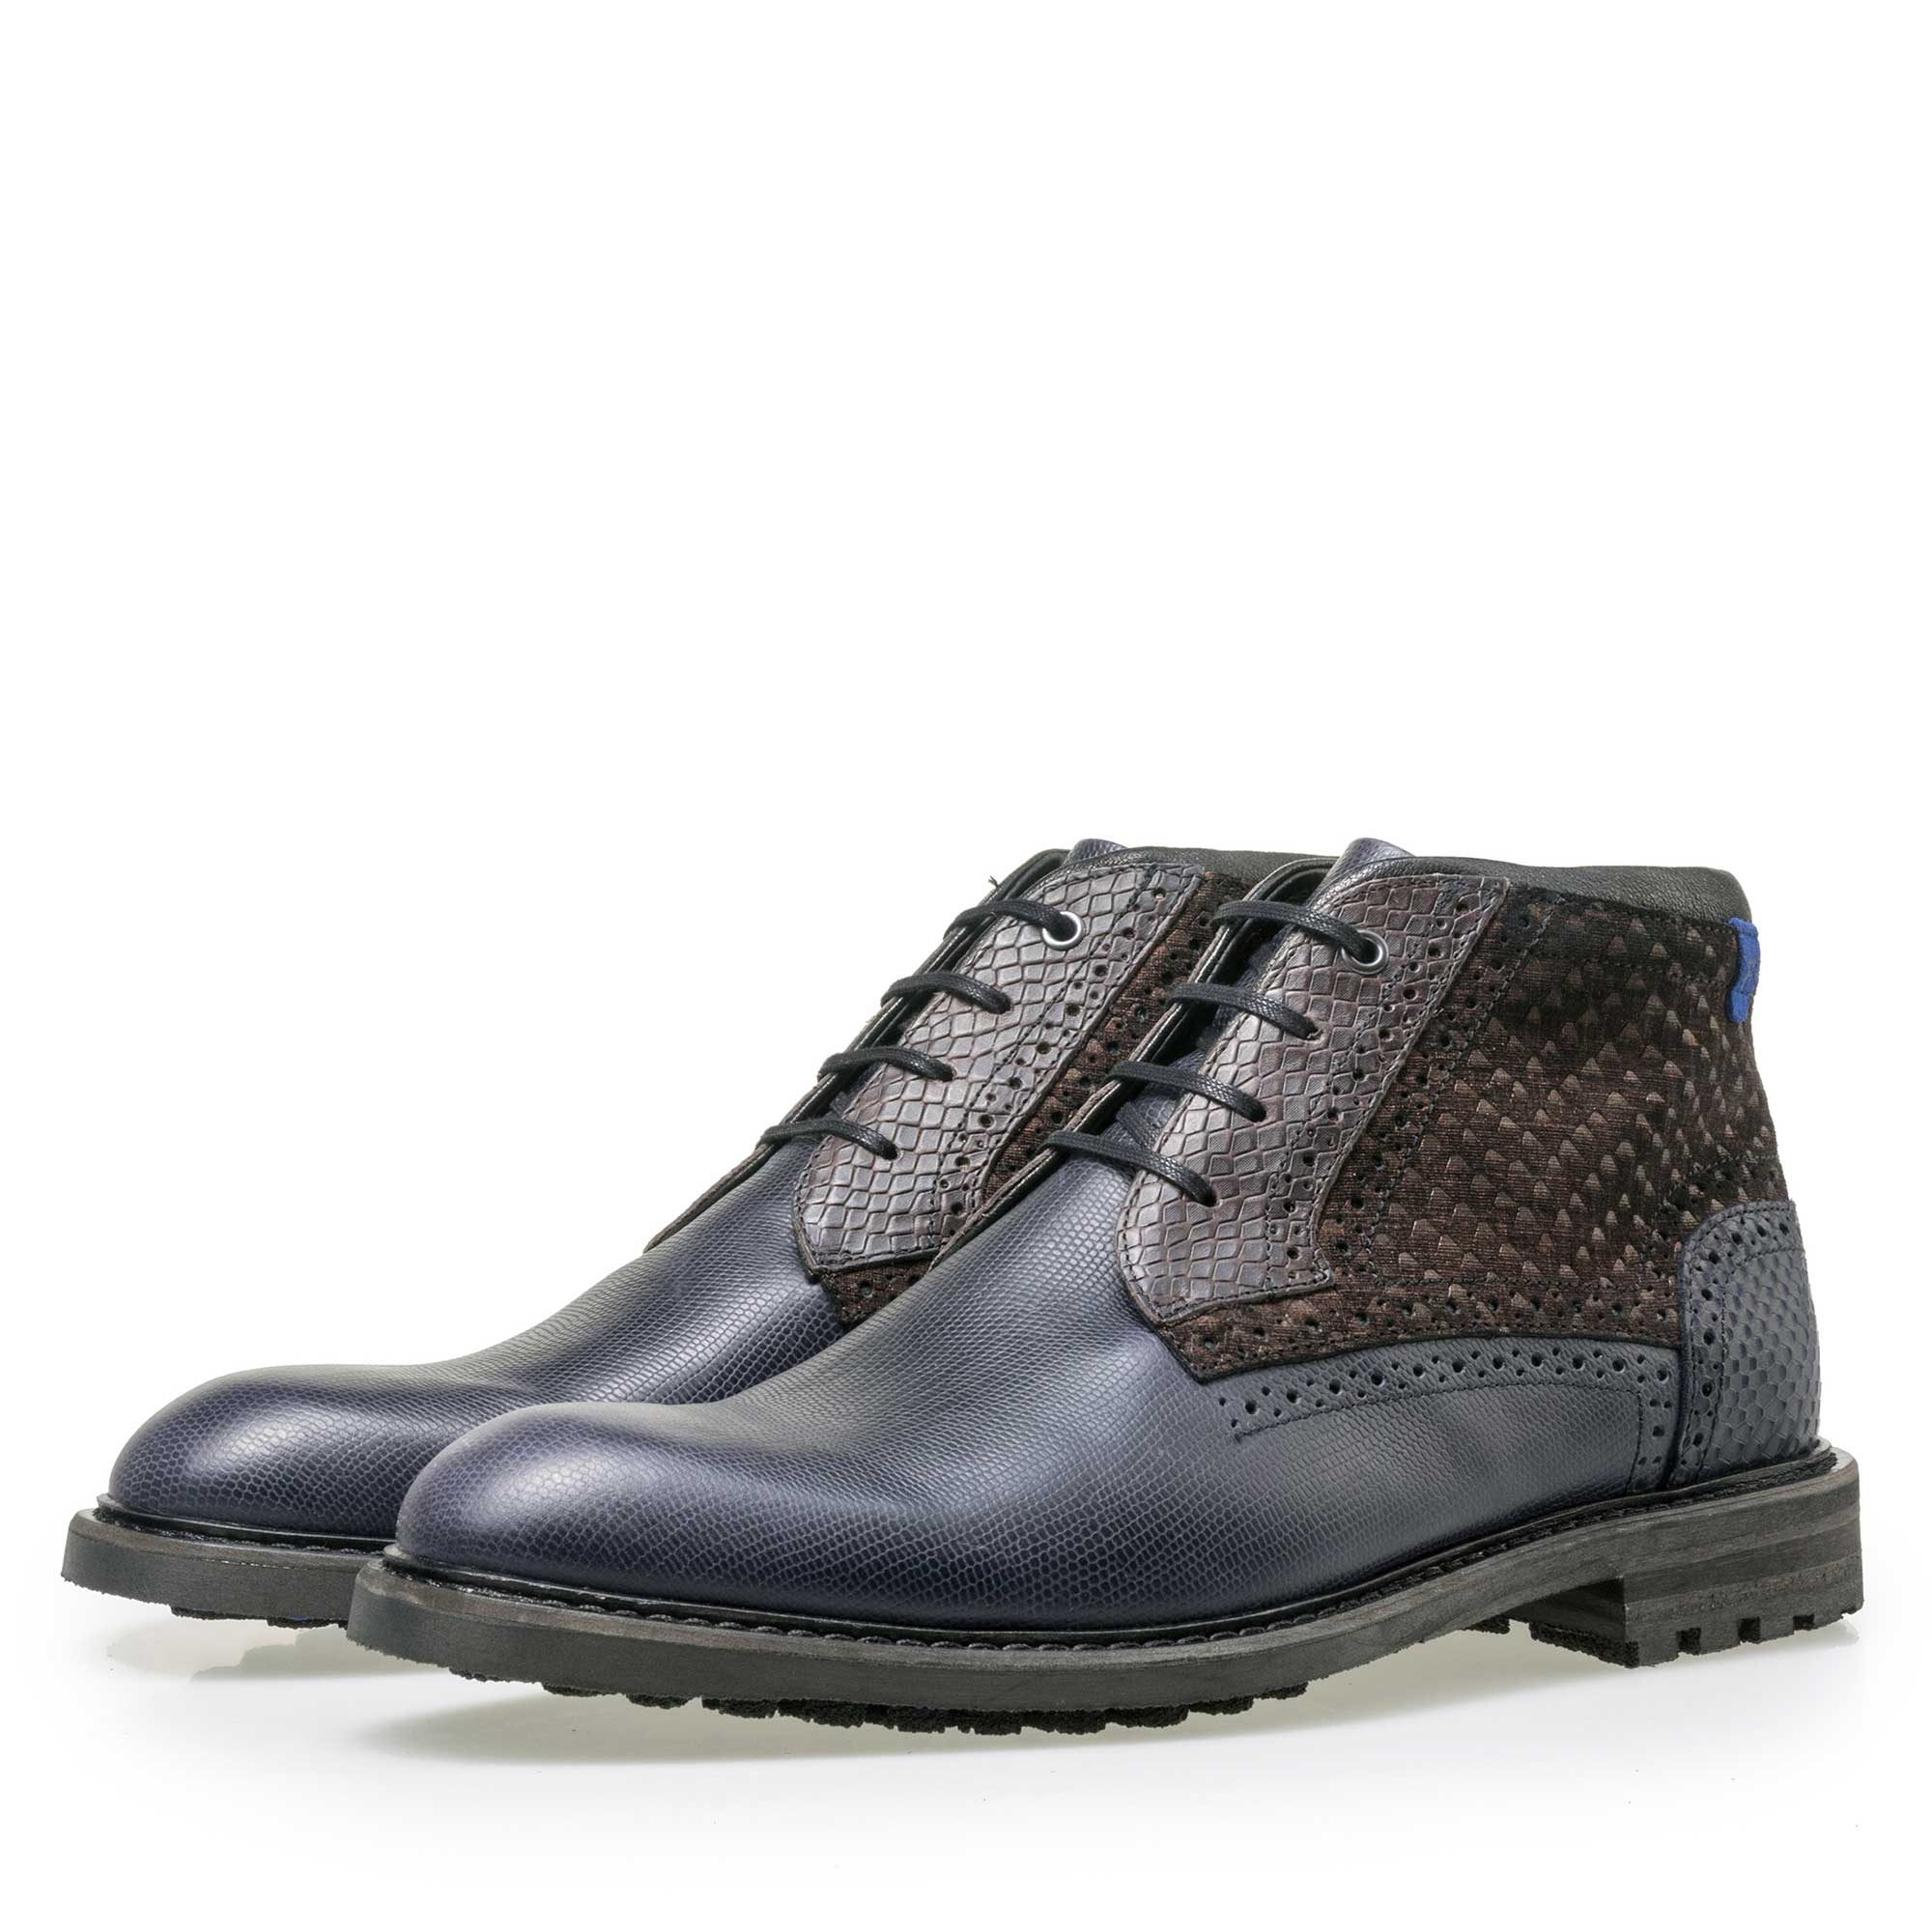 10978/02 - Floris van Bommel men's dark blue leather lace boot finished with a snake print